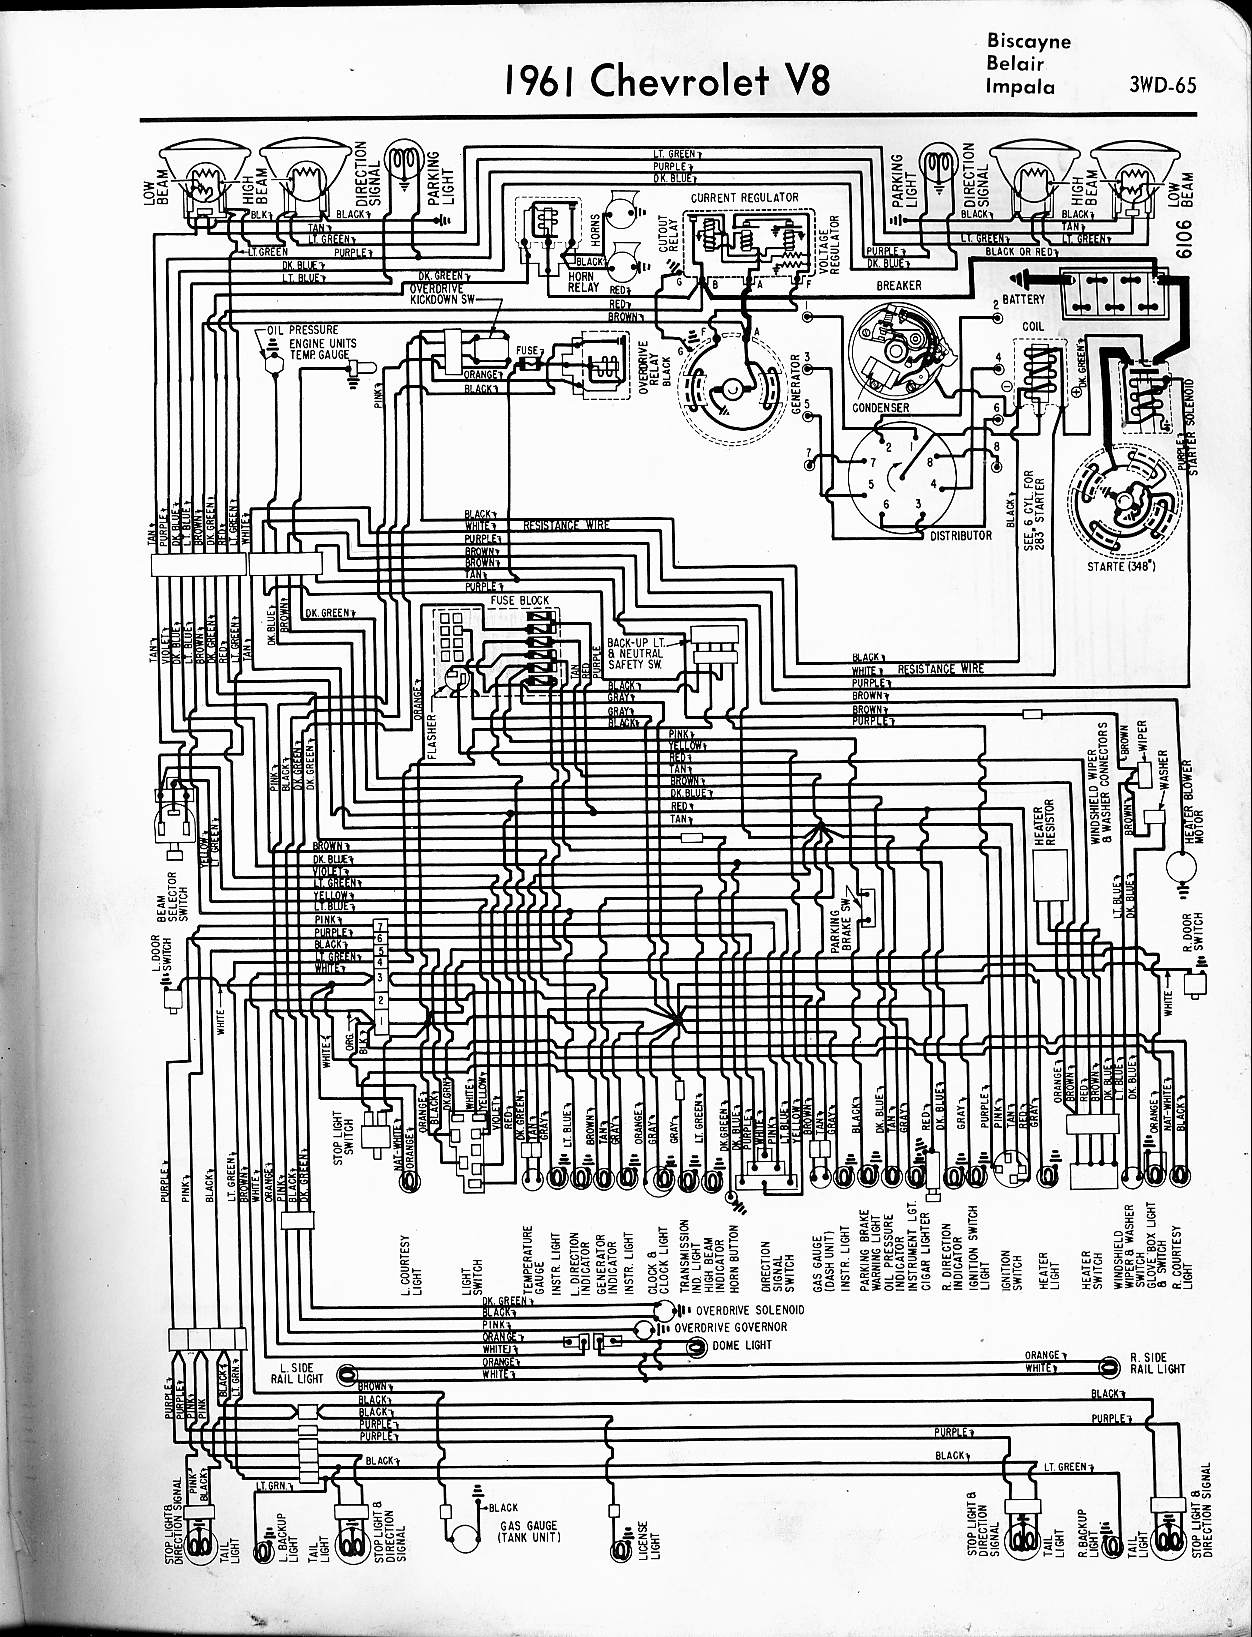 1959 corvette fuse box wiring diagram 1959 chevy truck ignition switch wiring diagram 1977 chevy wiring diagram free picture